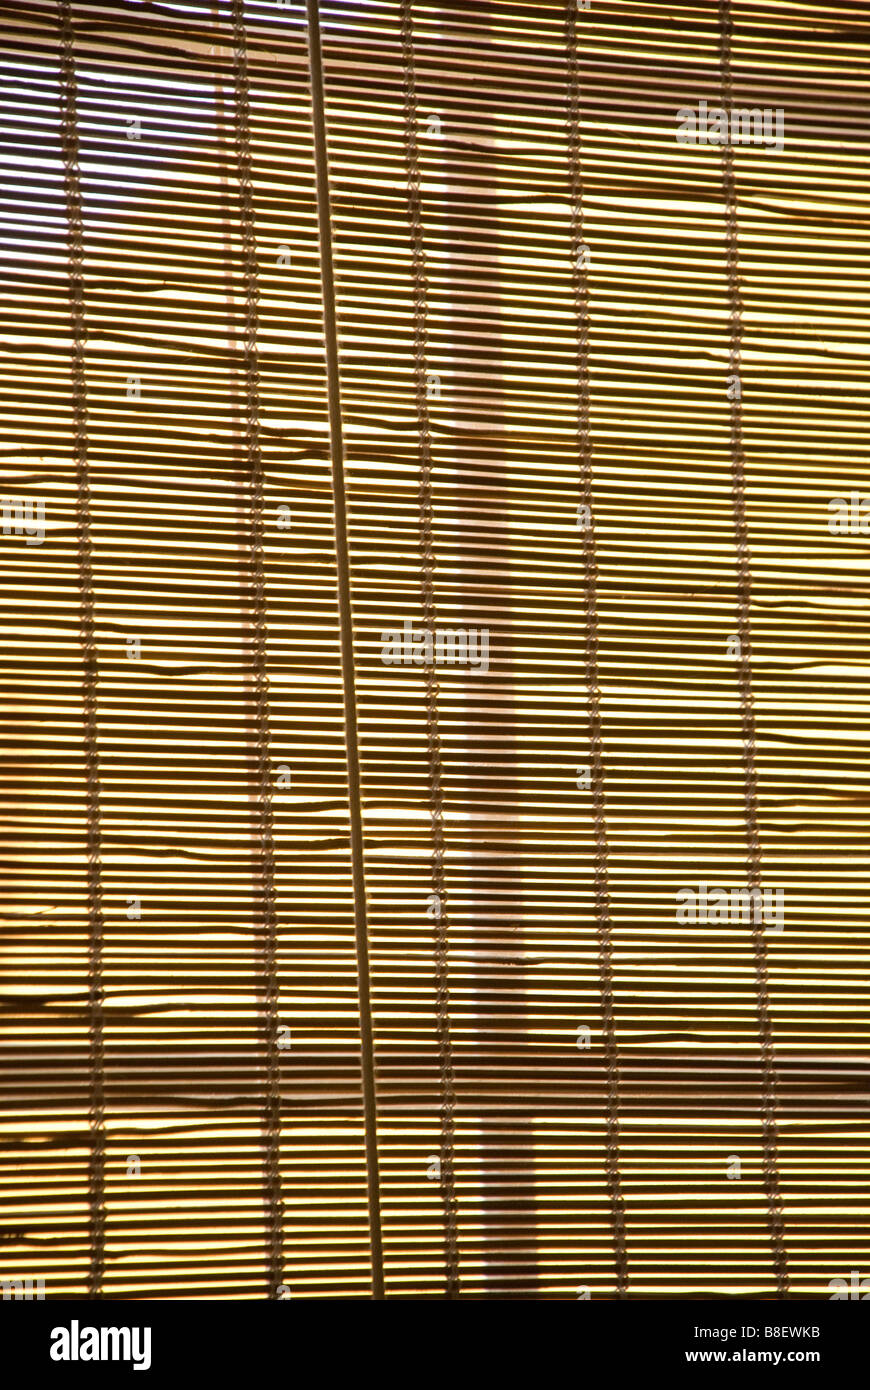 Bamboo blinds in front of a window - Stock Image